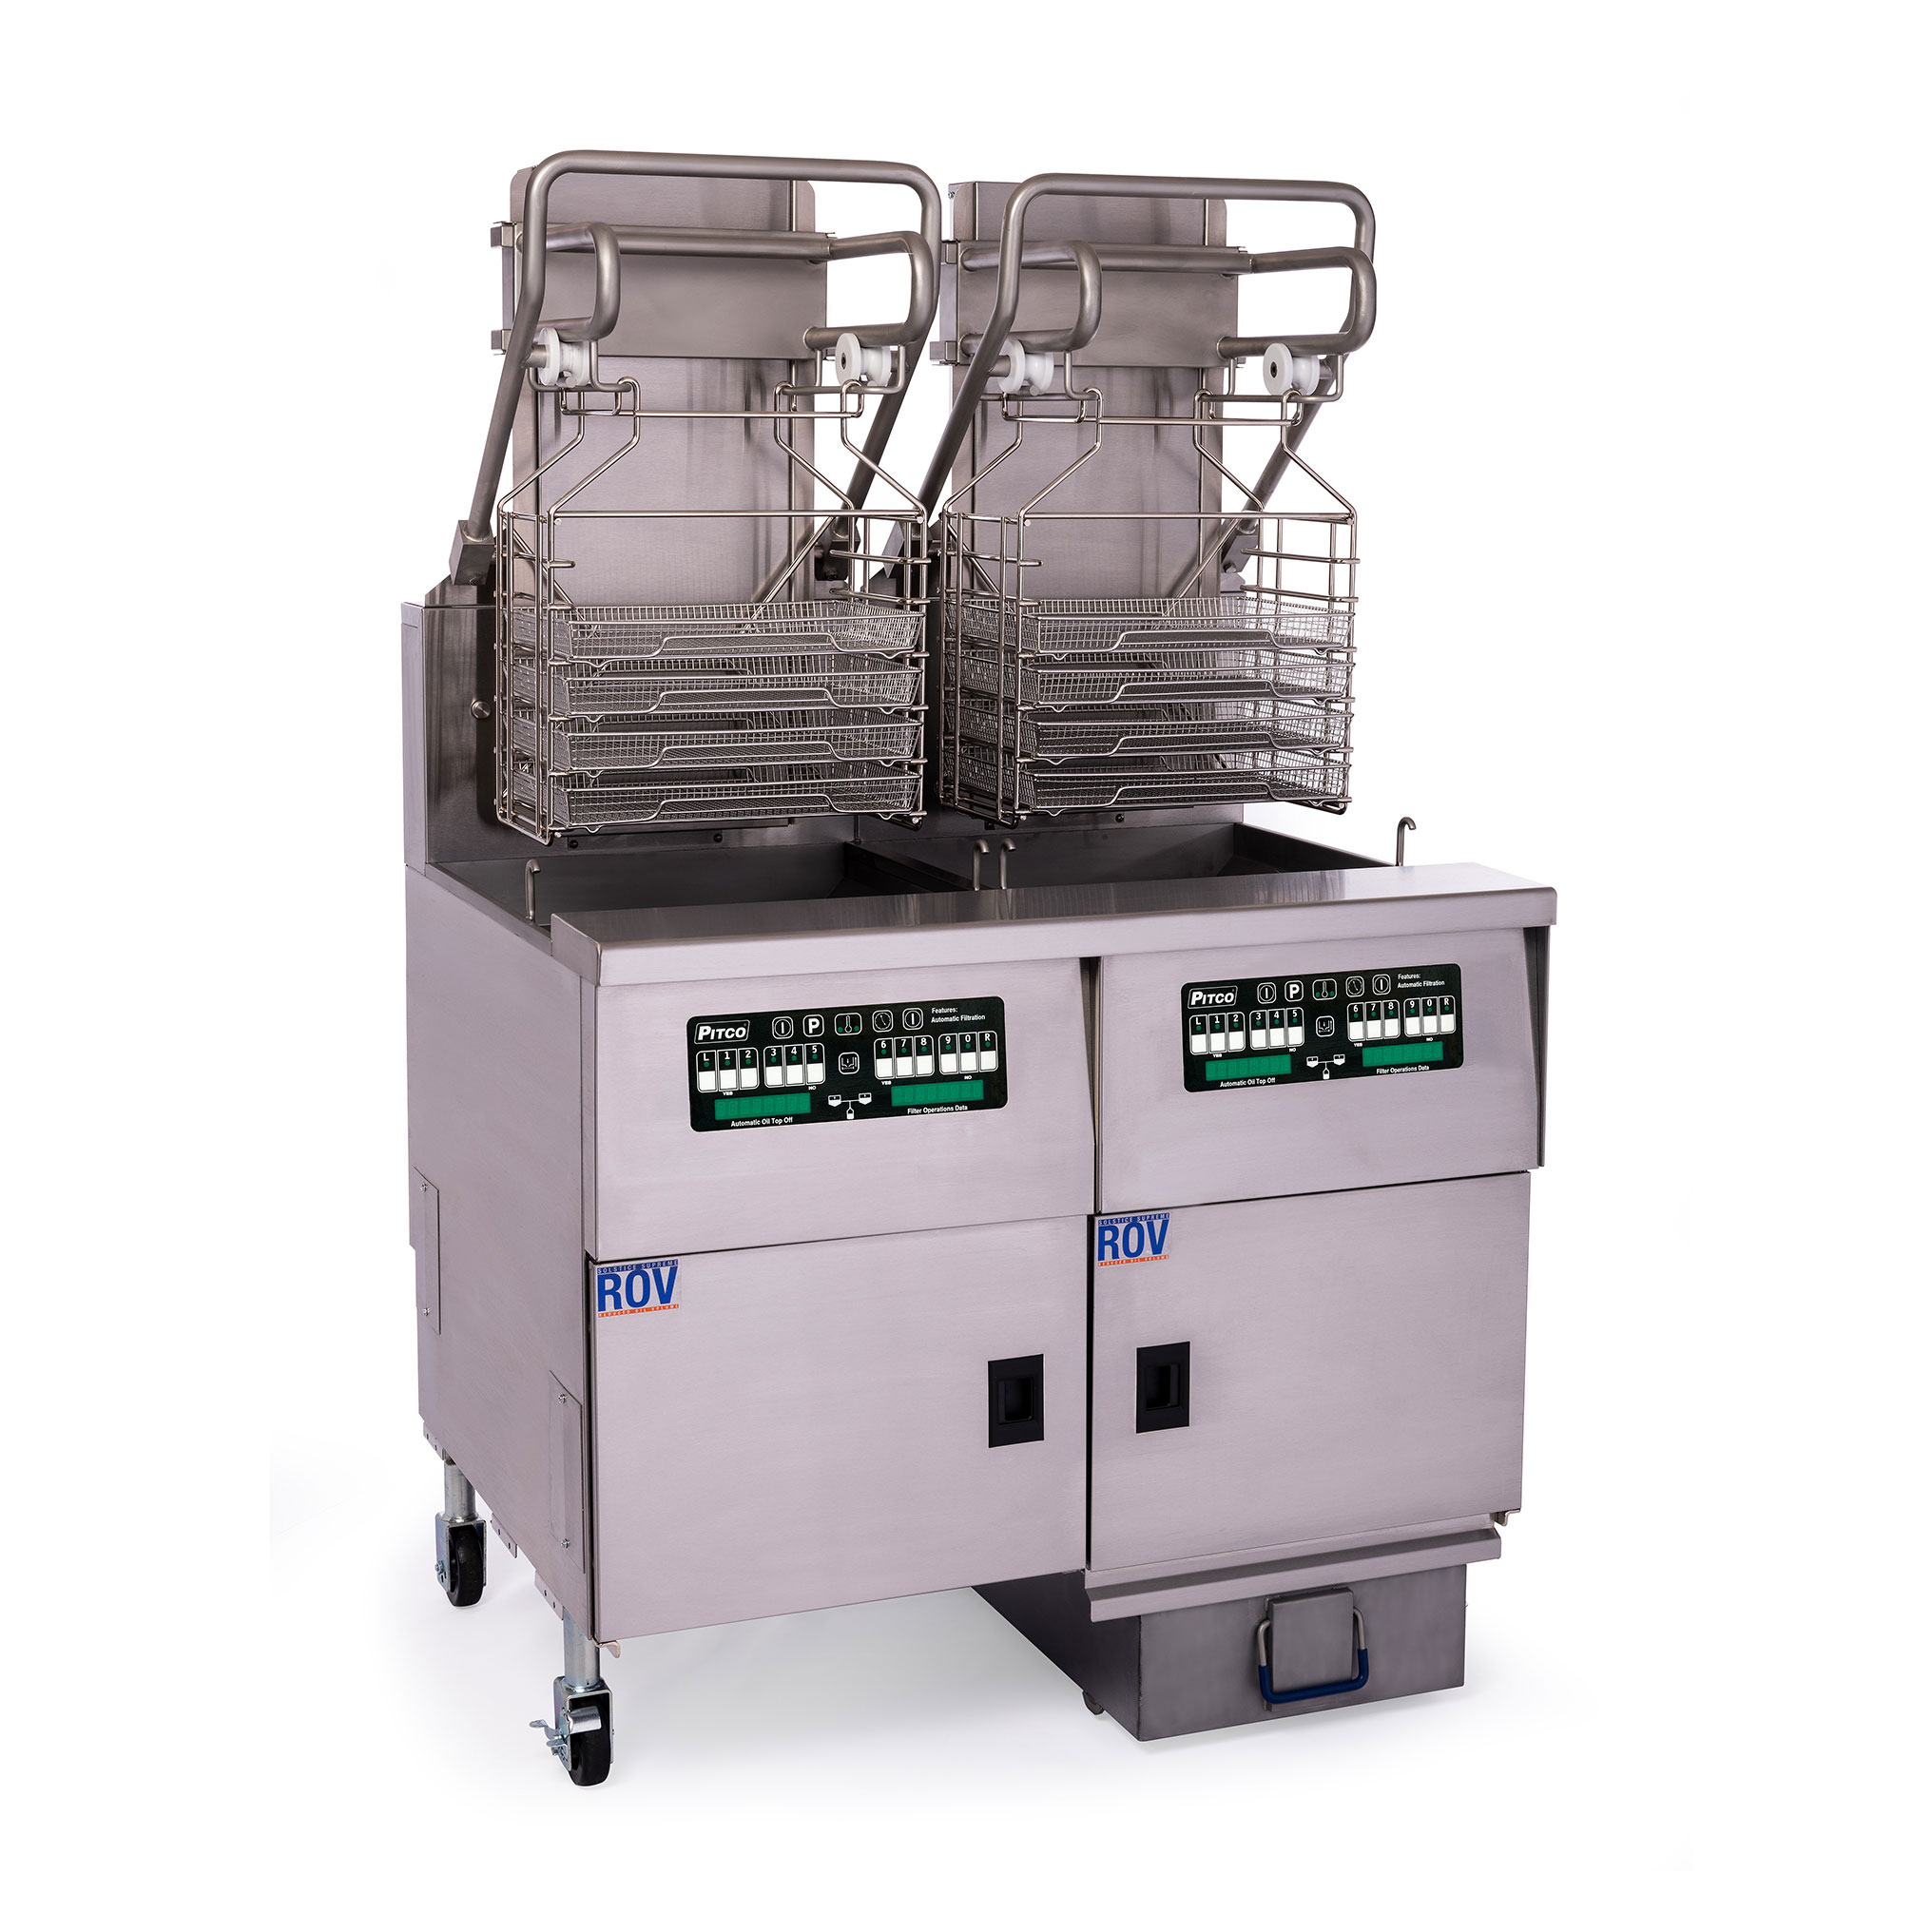 Pitco Frialator SELVRF-2/FD fryer, electric, multiple battery